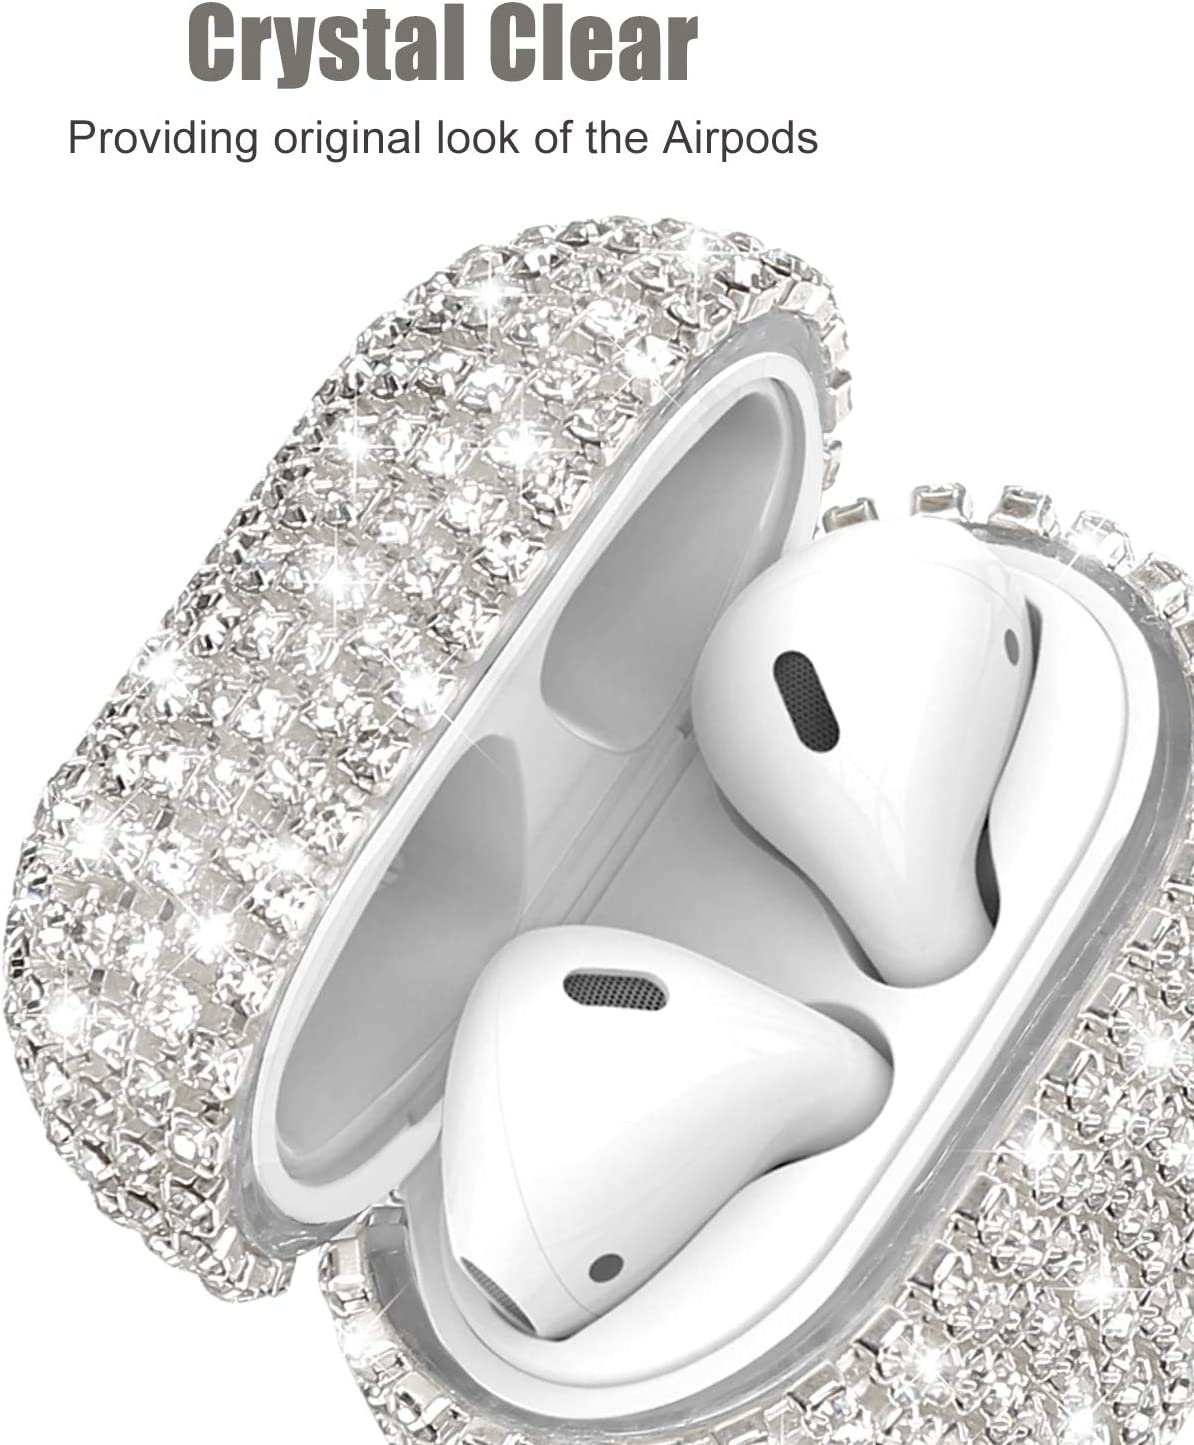 Silver Bling Diamond Airpods Case Cover Glitter Cute Airpod Accessories Compatiable with Apple Airpods 1 2 JIELIELE Airpods Cases